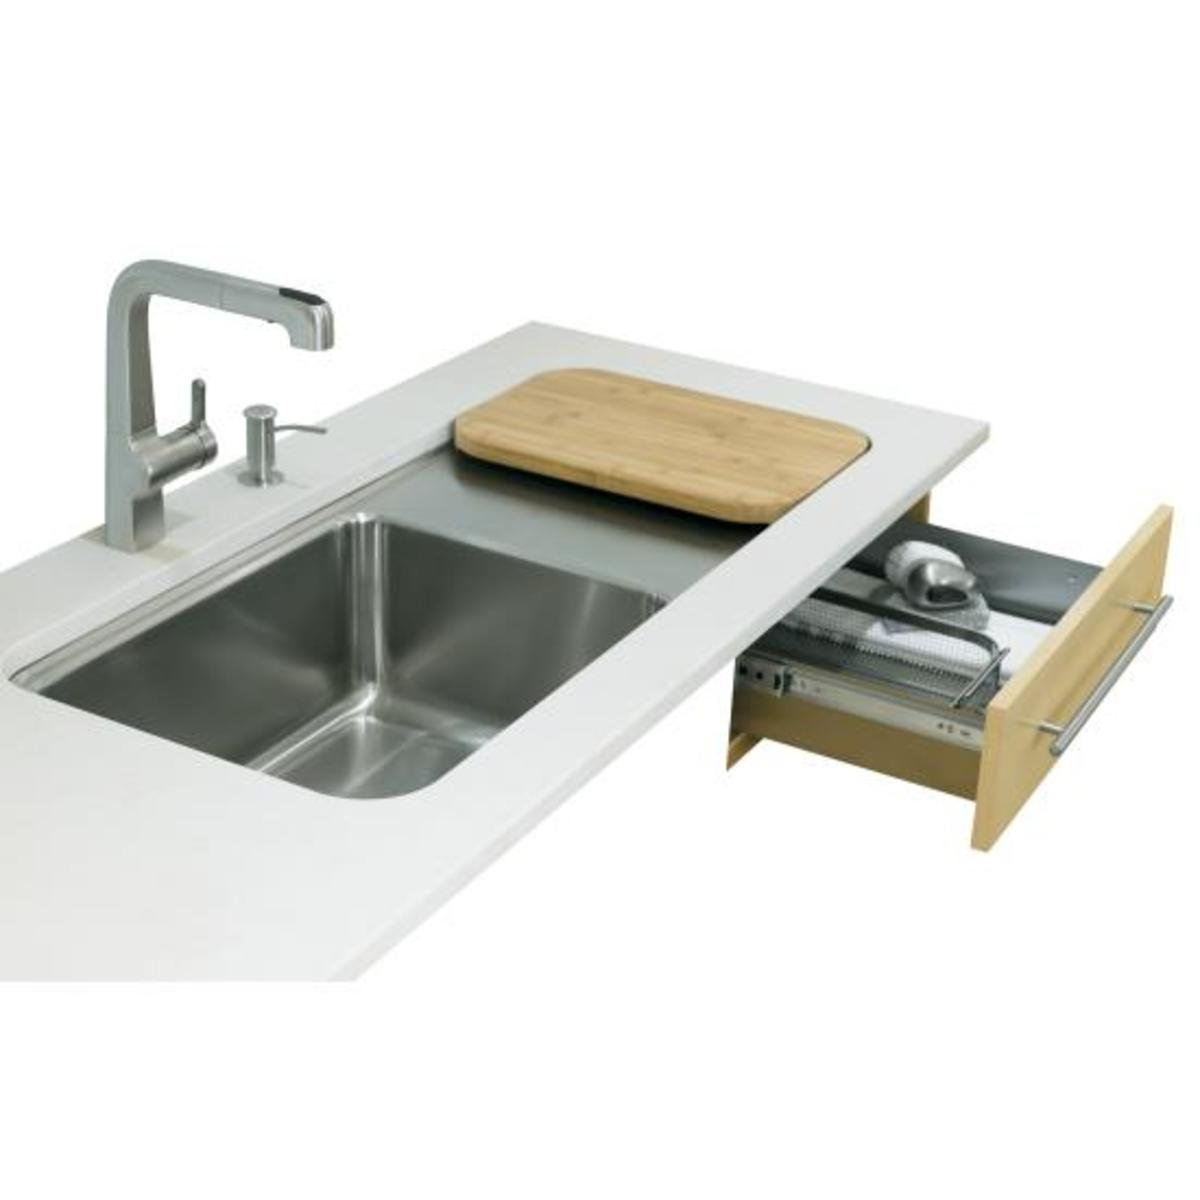 Kohler Food Preparation Sinks make easy work of meats and vegetable preparation